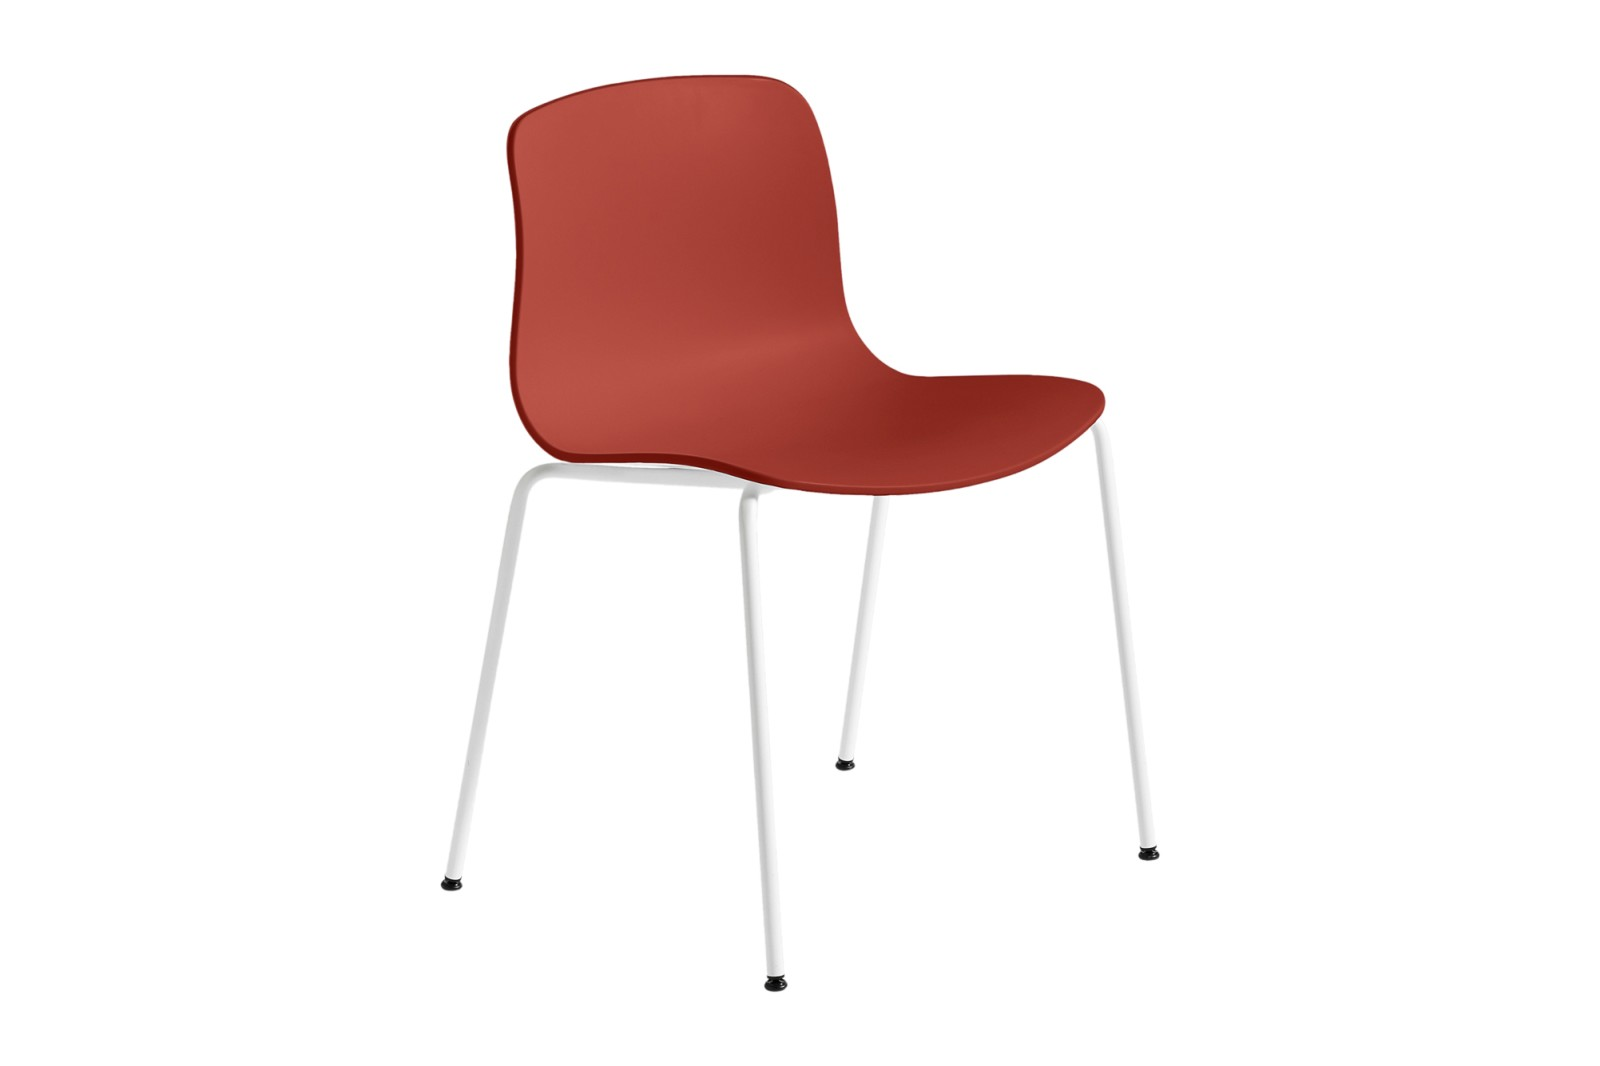 About A Chair AAC16 Warm red, White Powder Coated Steel